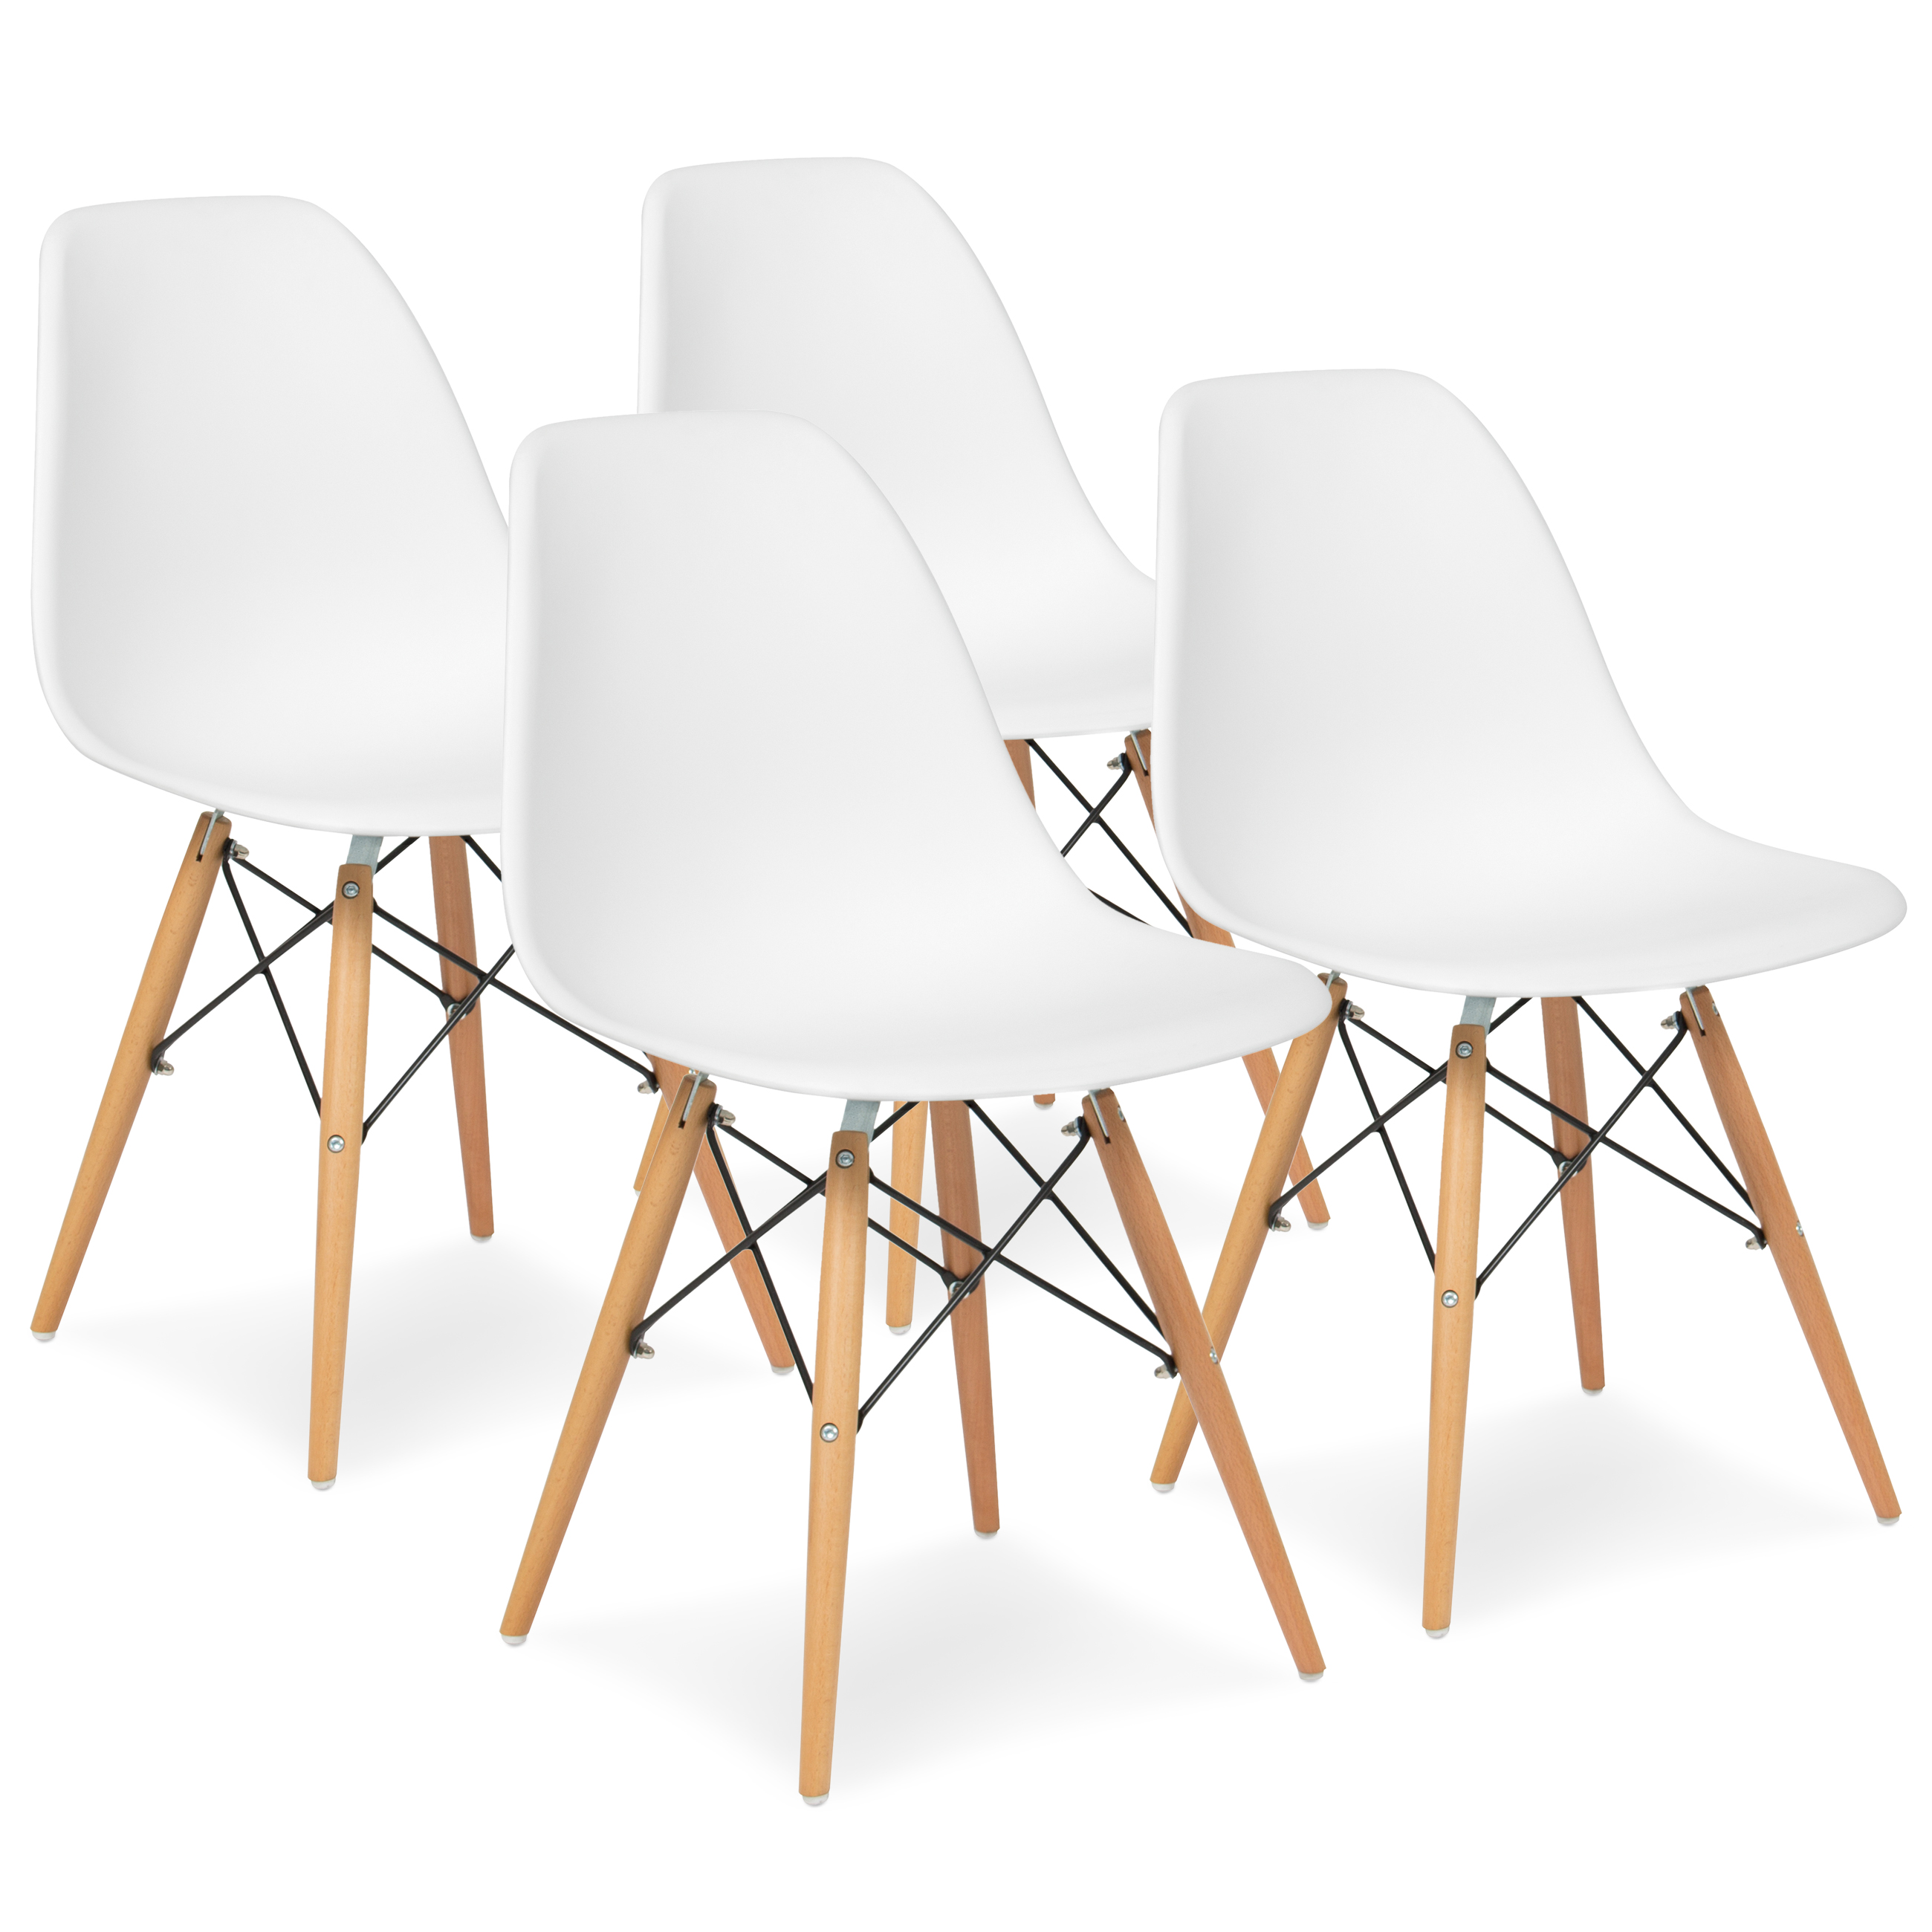 Best Choice Products Set of 4 Mid Century Modern Eames Style Dining Chair w  Wood Legs, Molded Plastic Shell White by